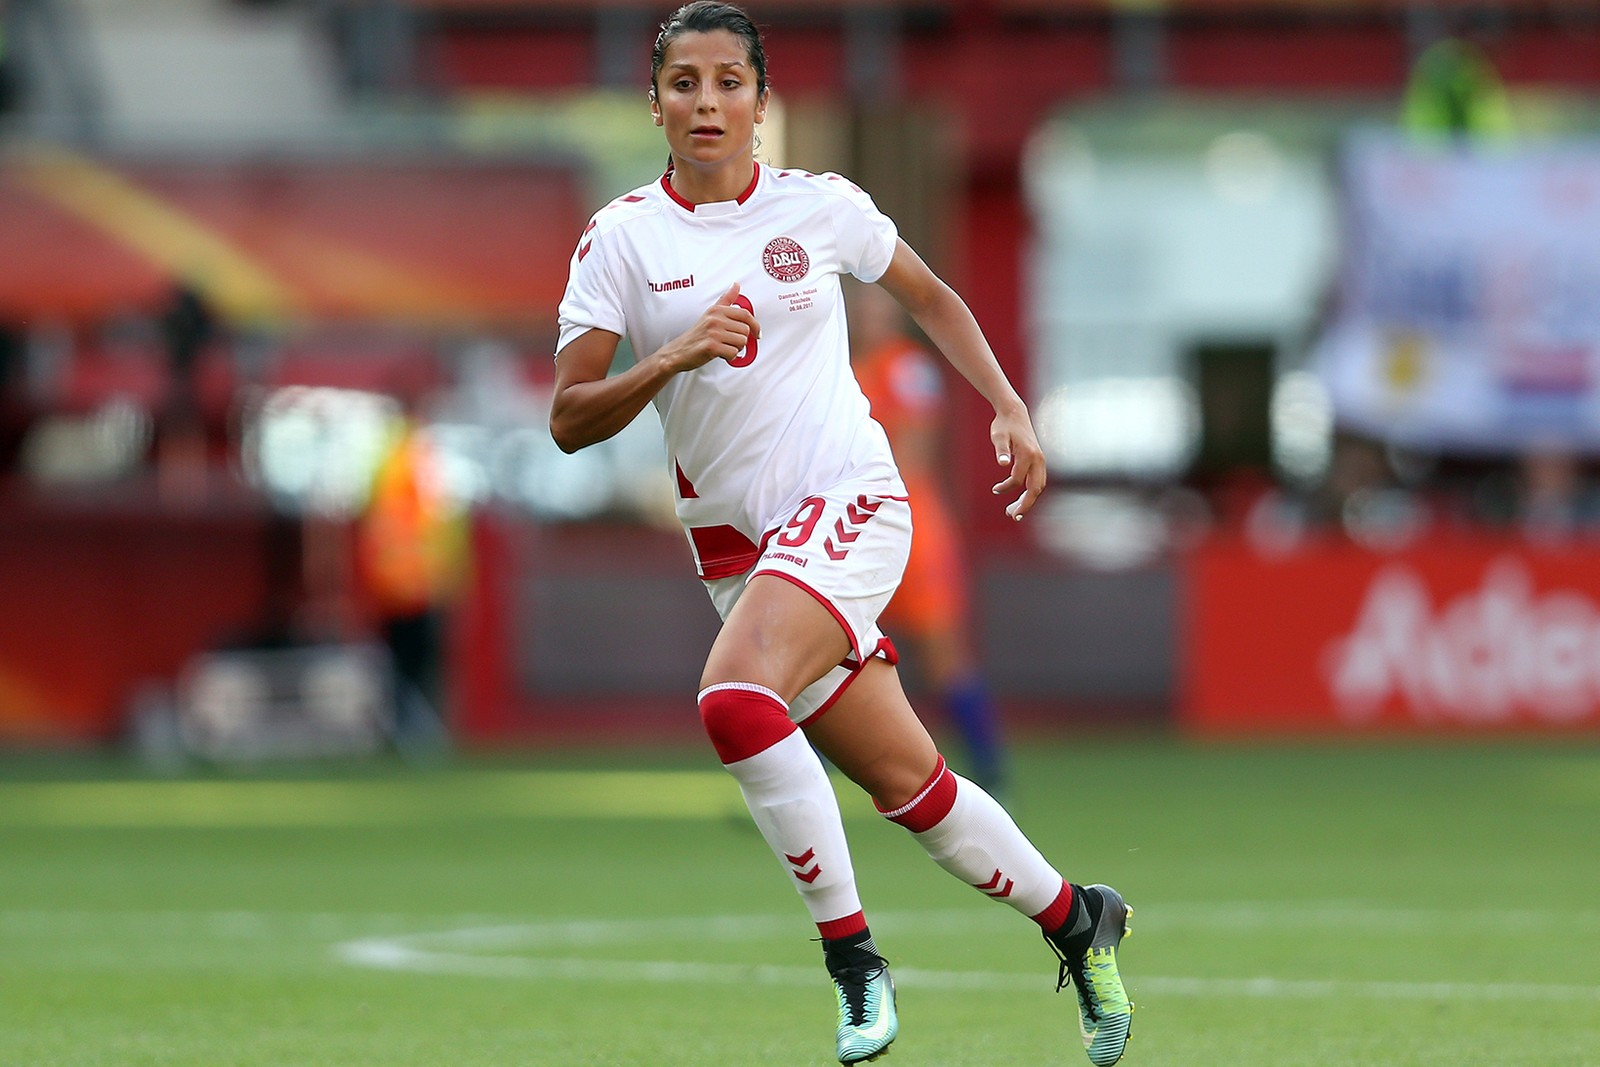 Nadia Nadim Female Footballer Nike Gurls Talk Adwoa Aboah Video documentary russia south africa paris football women's soccer activism human rights Unesco PSG Manchester City